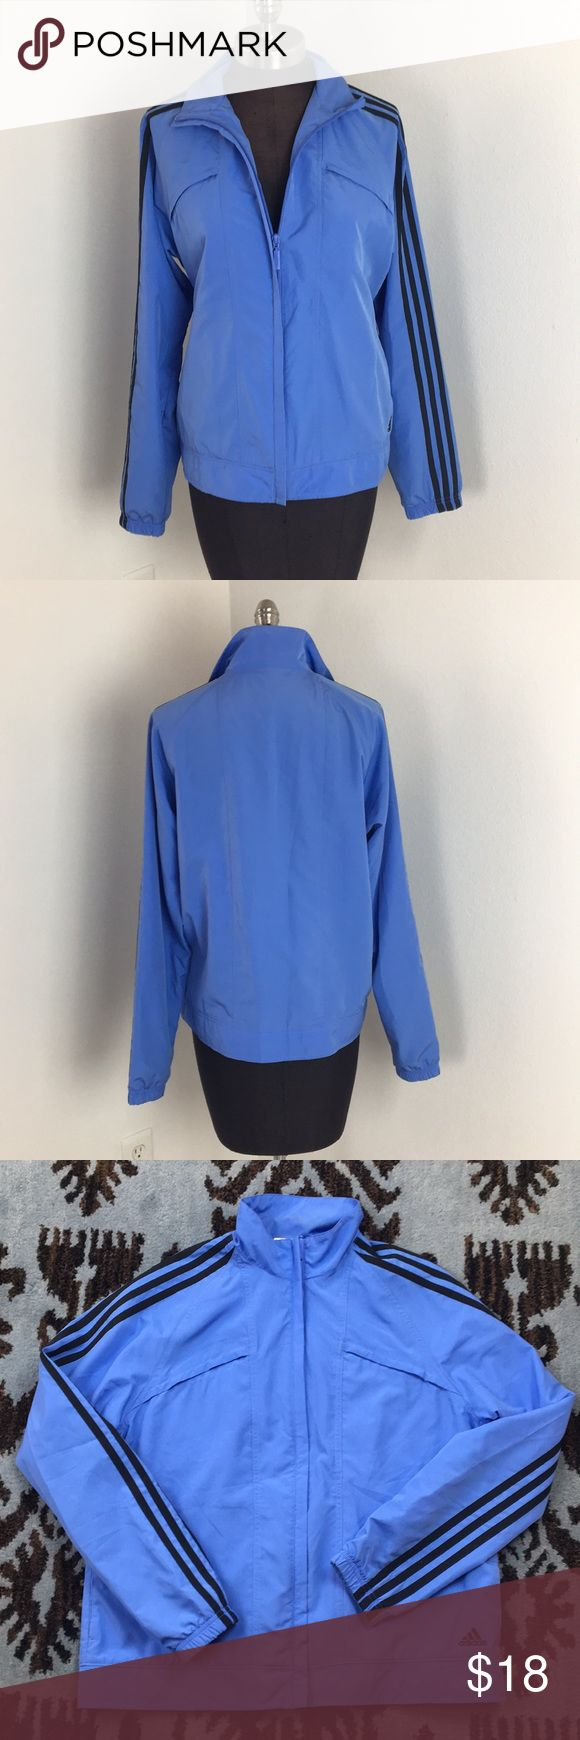 """Adidas Blue Striped Windbreaker Adidas Blue with Navy striped windbreaker, ladies size large. Two pockets on chest. Mesh lined. 100% polyester. Excellent condition, no signs of wear. One hidden zip pocket near hem. Full length zip. True to size. 26"""" long. Chest measures 21"""" flat. adidas Jackets & Coats"""